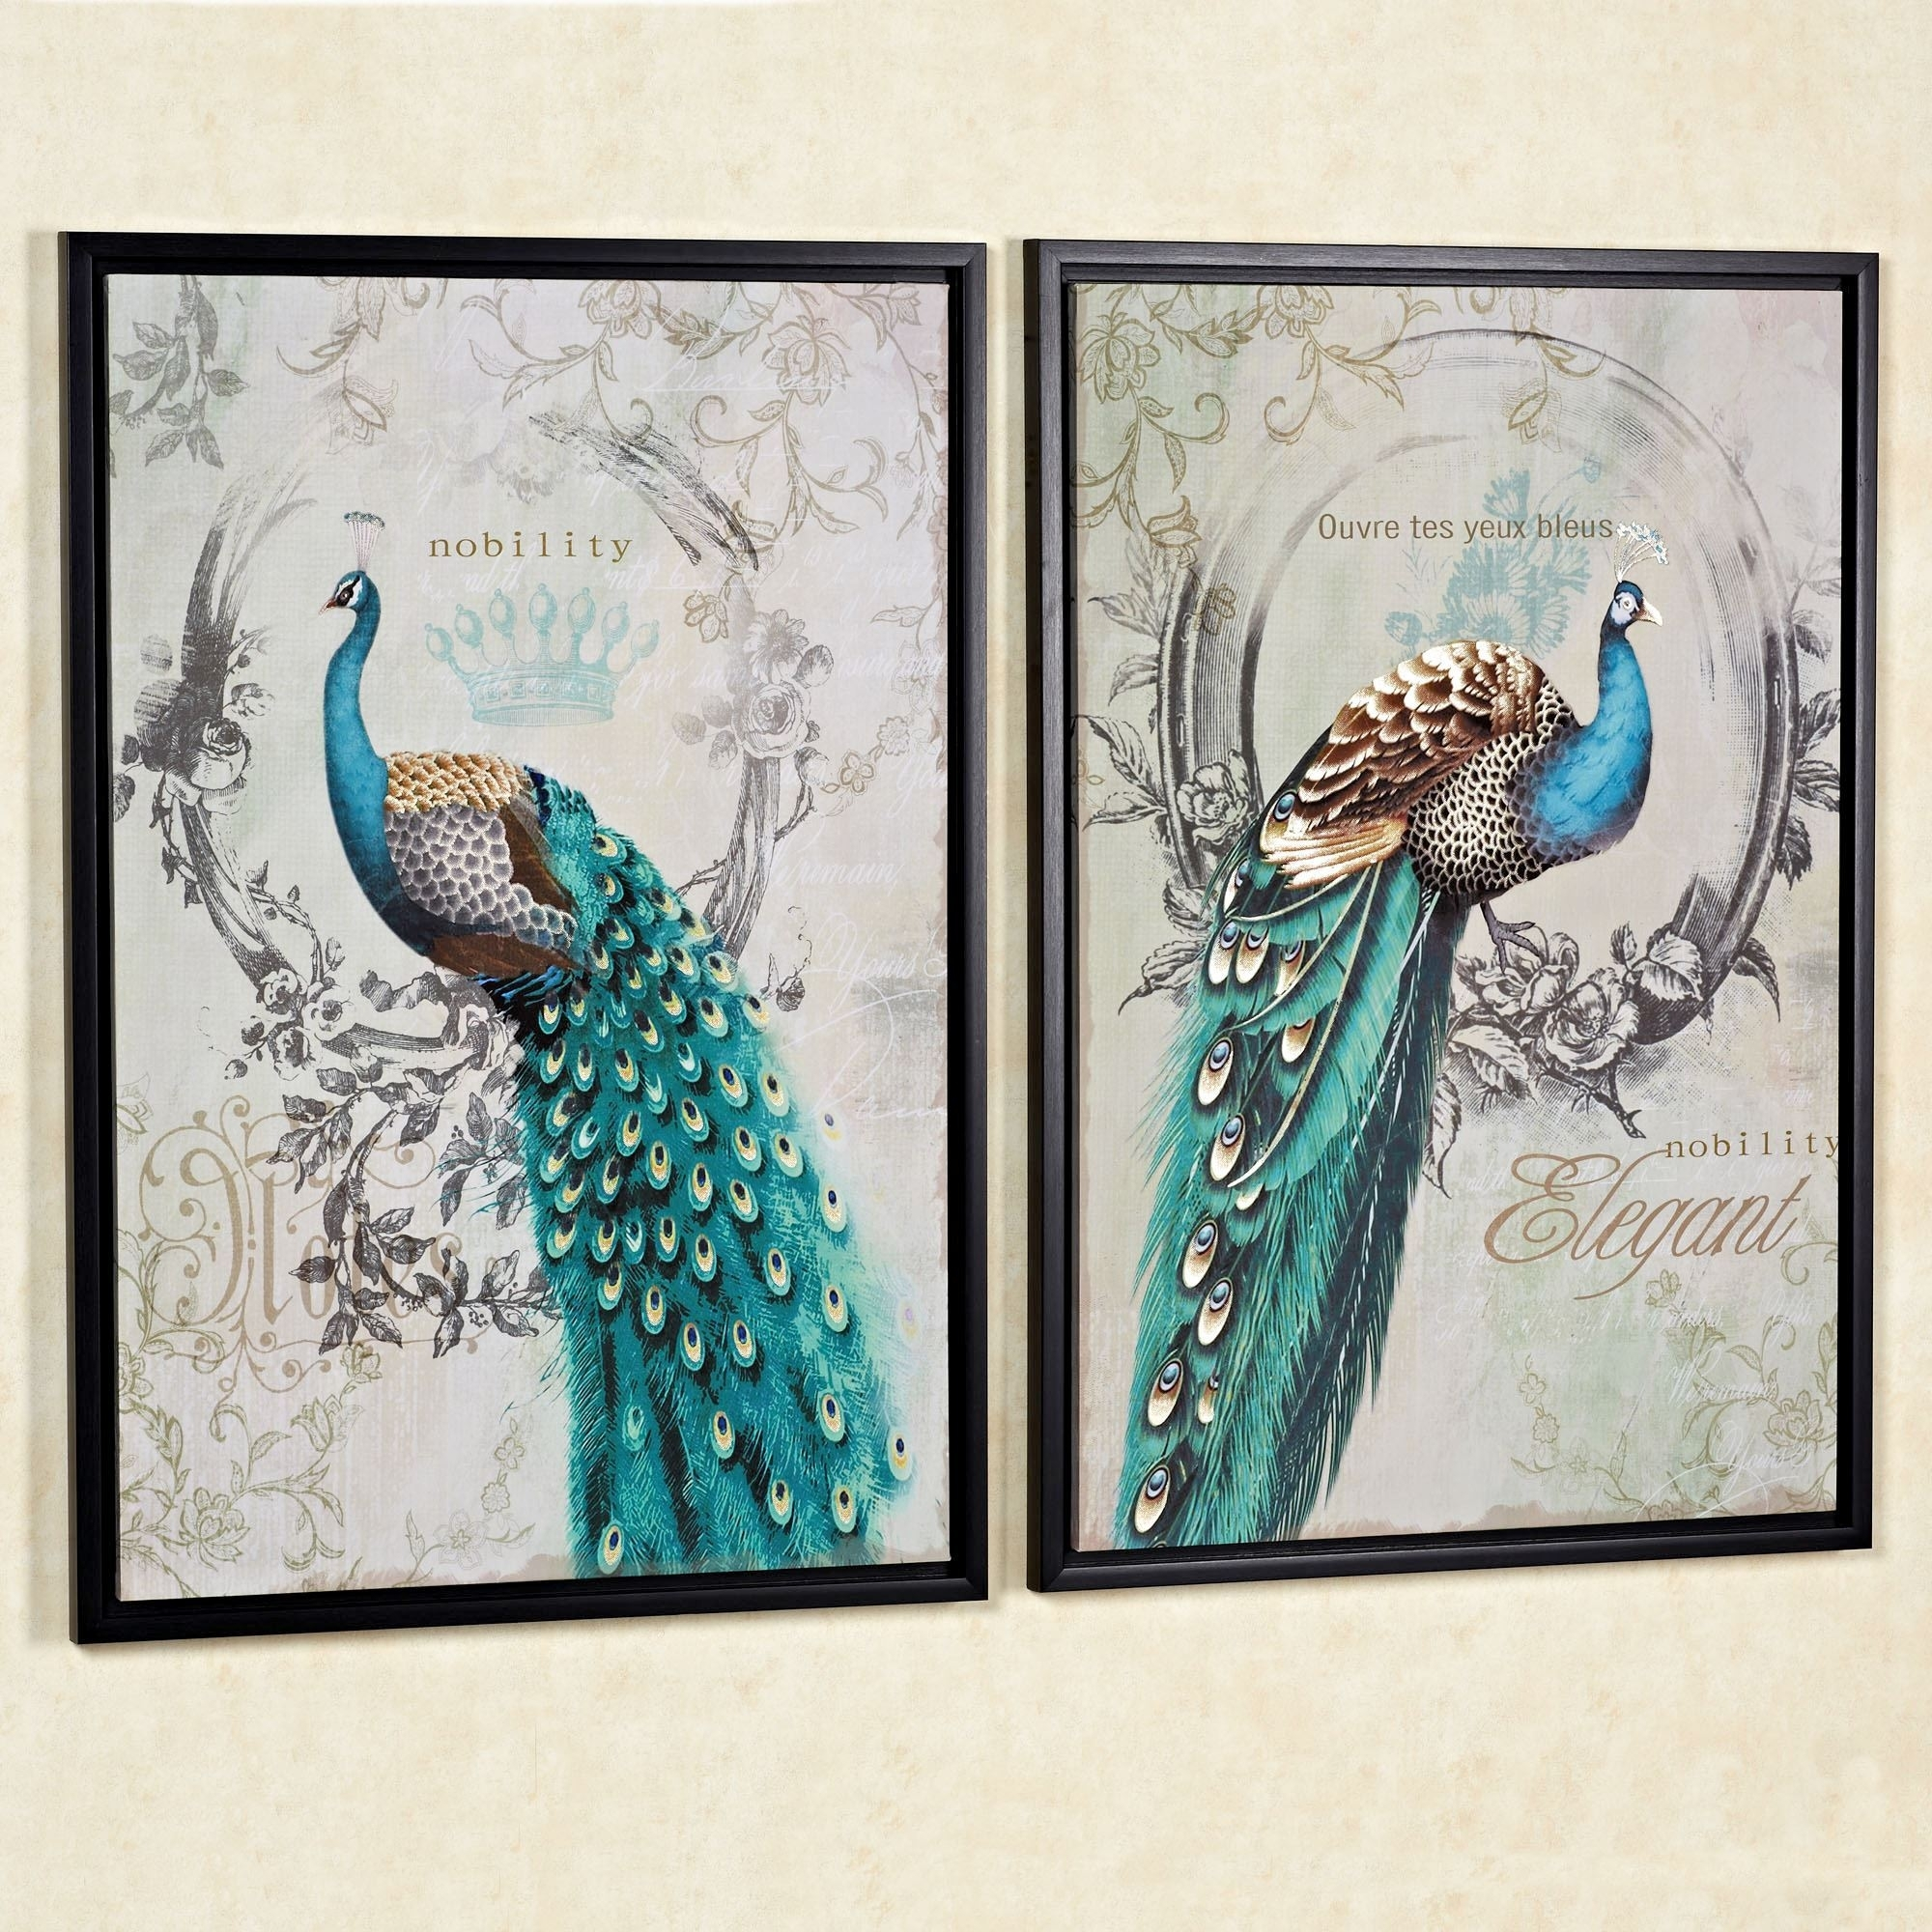 Framed Artwork For Bathroom, Pier One Peacock Wall Art Peacock Regarding 2017 Pier One Abstract Wall Art (View 19 of 20)